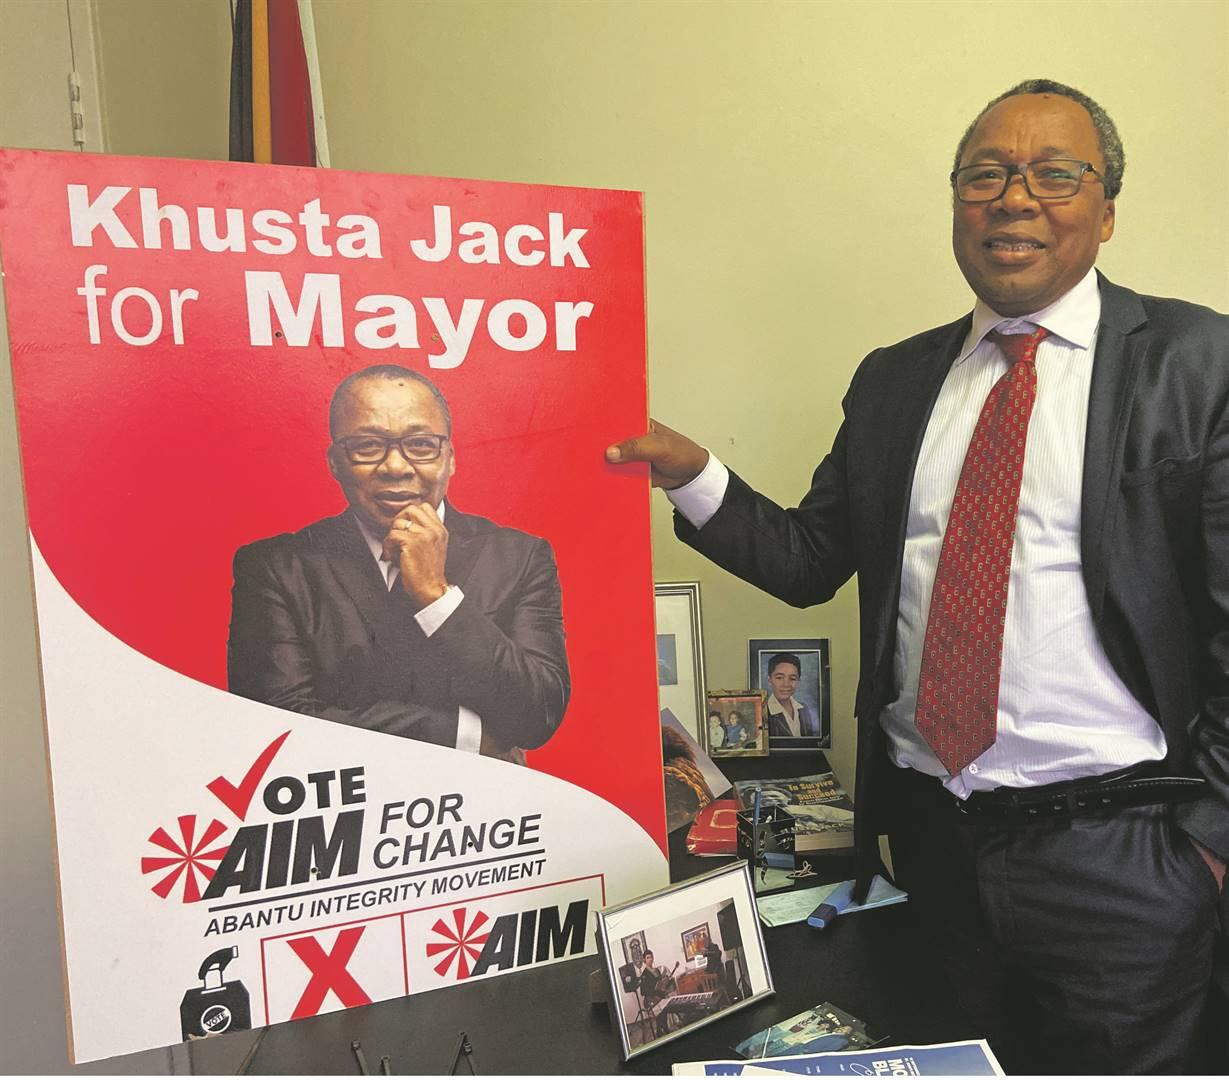 Mkhuseli Jack believes he is the right person to lead Nelson Mandela Bay, following years of instability. Photo: Bongekile Macupe